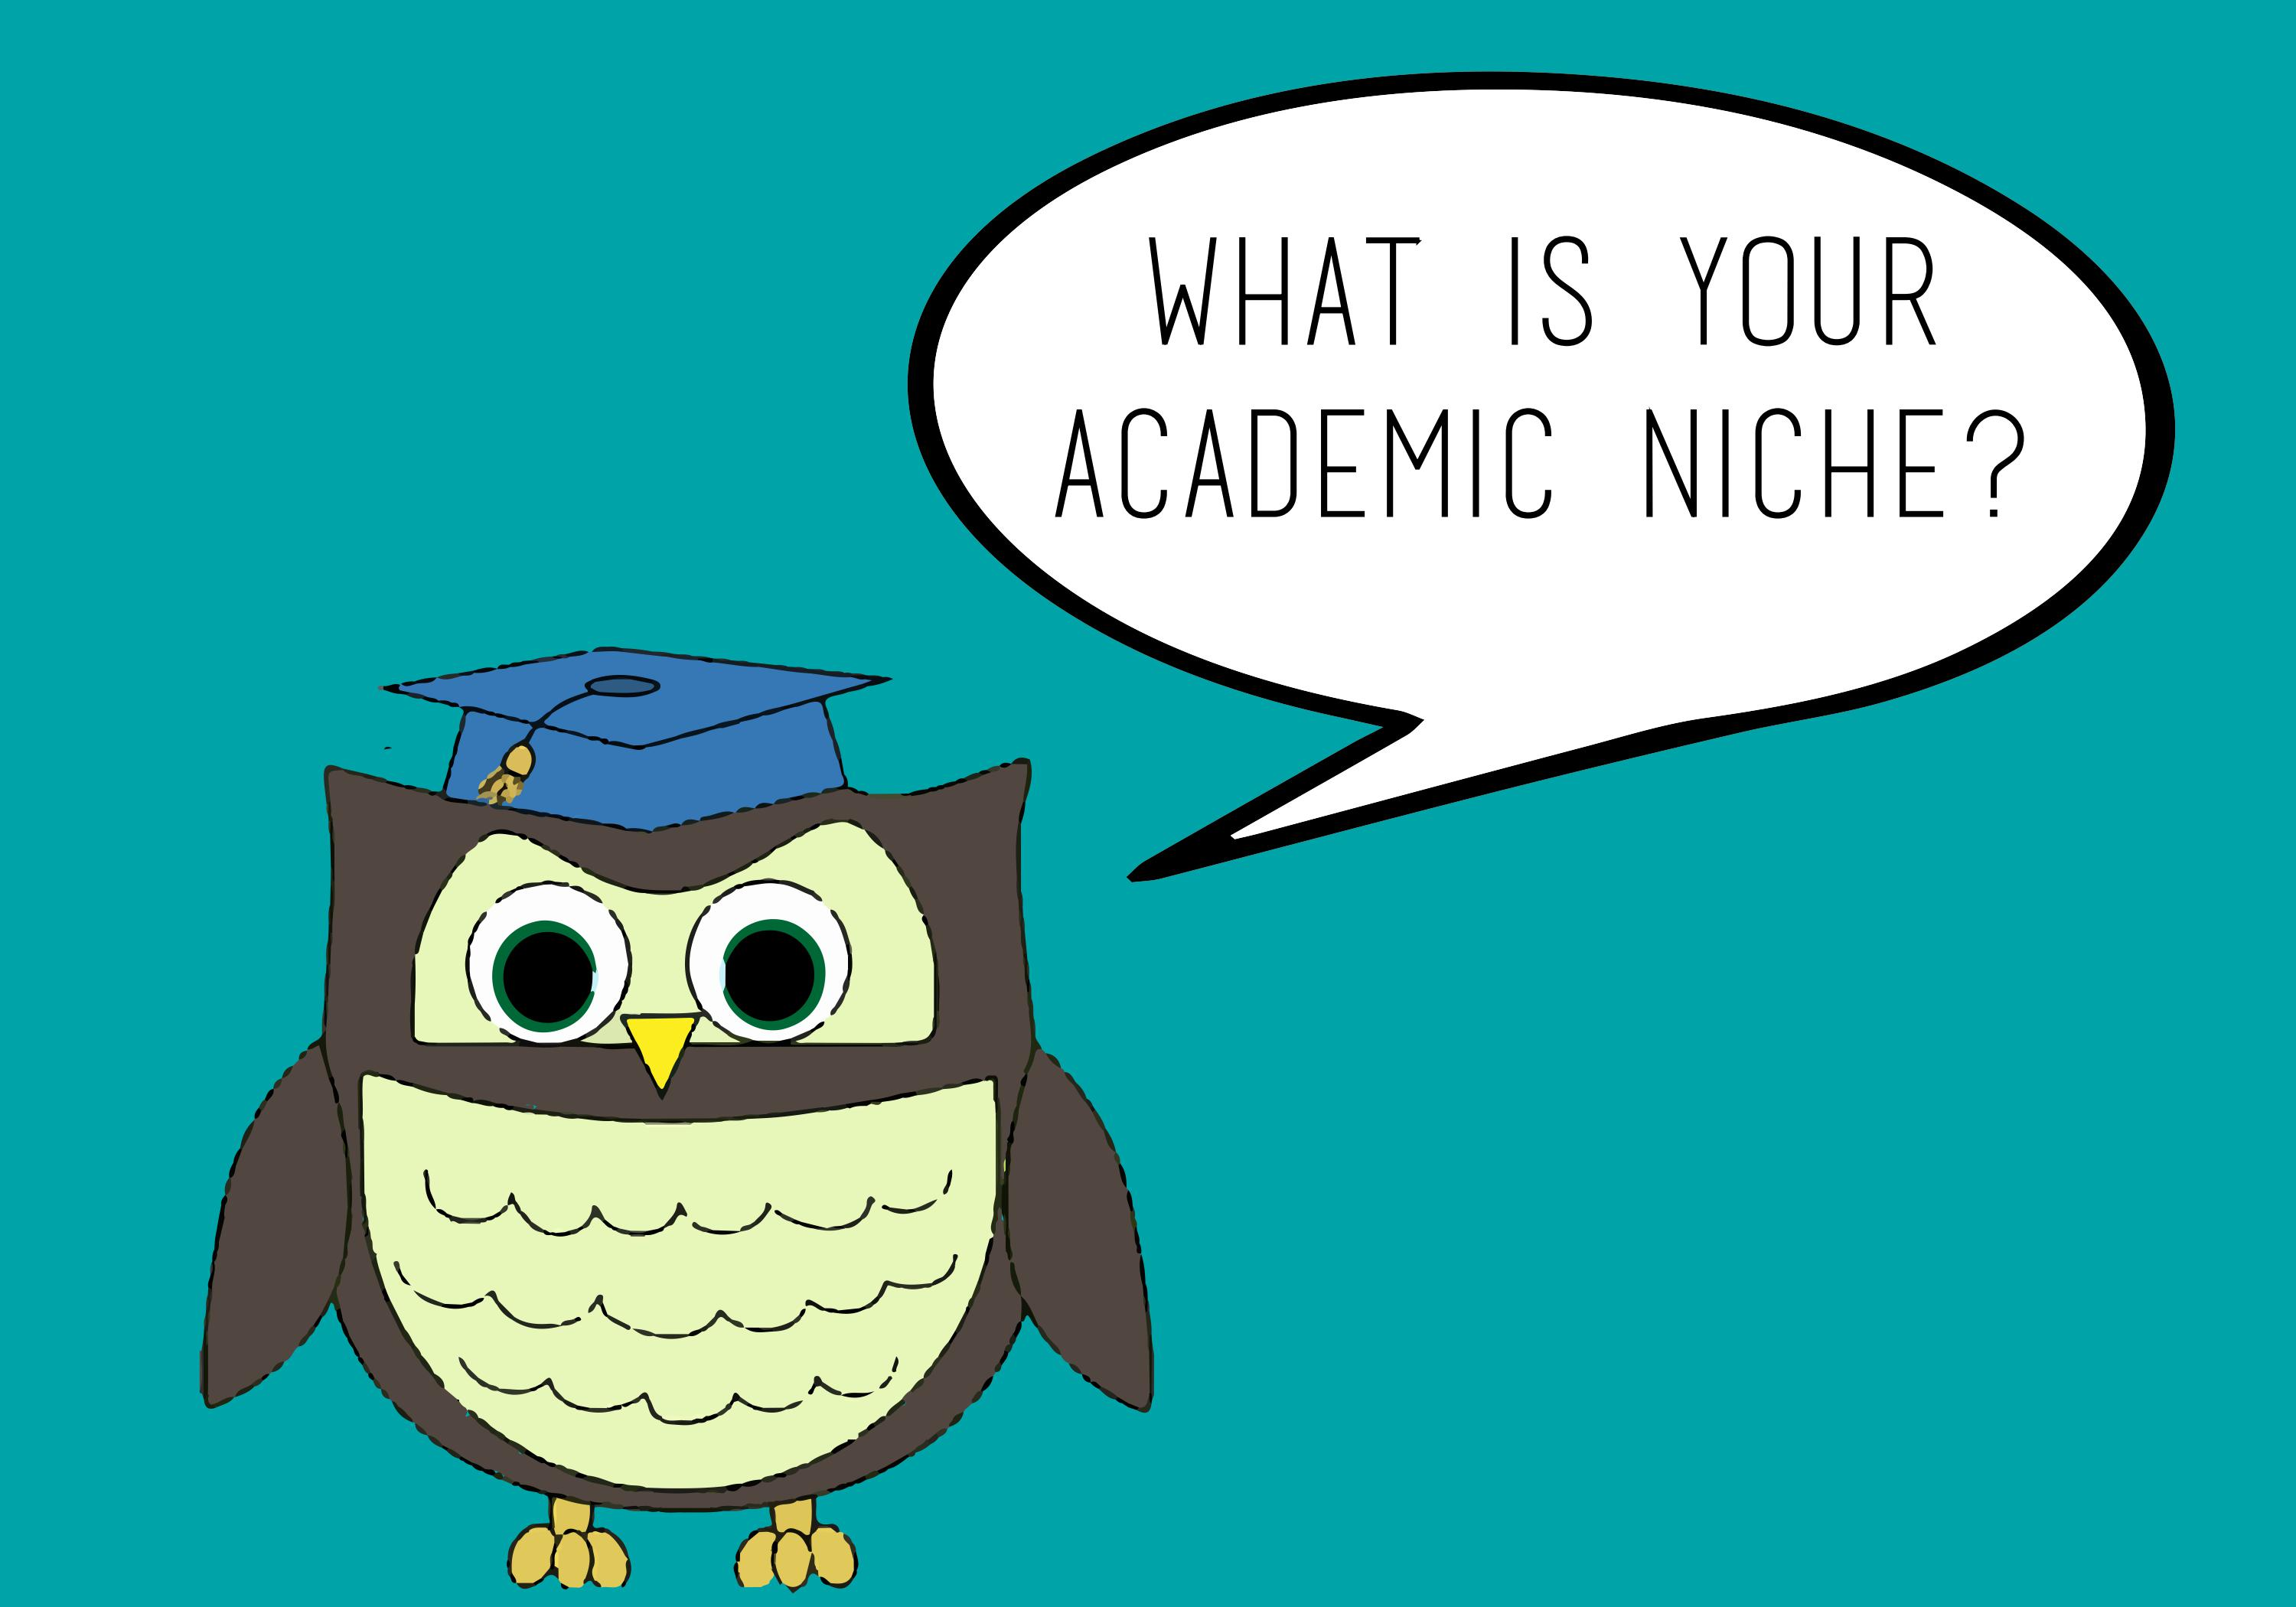 What is Your Academic Niche